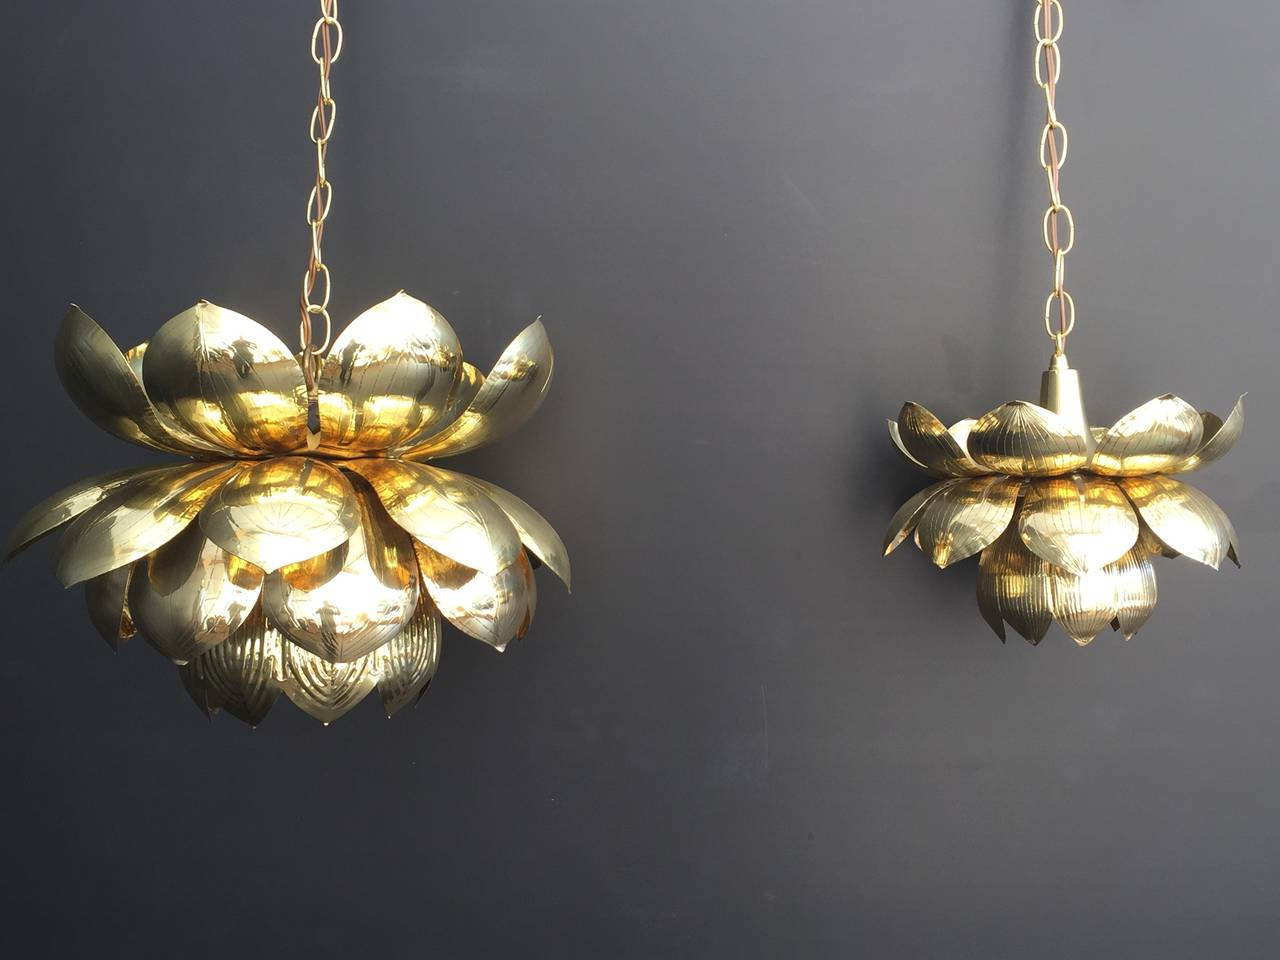 Large Brass Lotus Pendant Light by Feldman In Excellent Condition For Sale In North Hollywood, CA